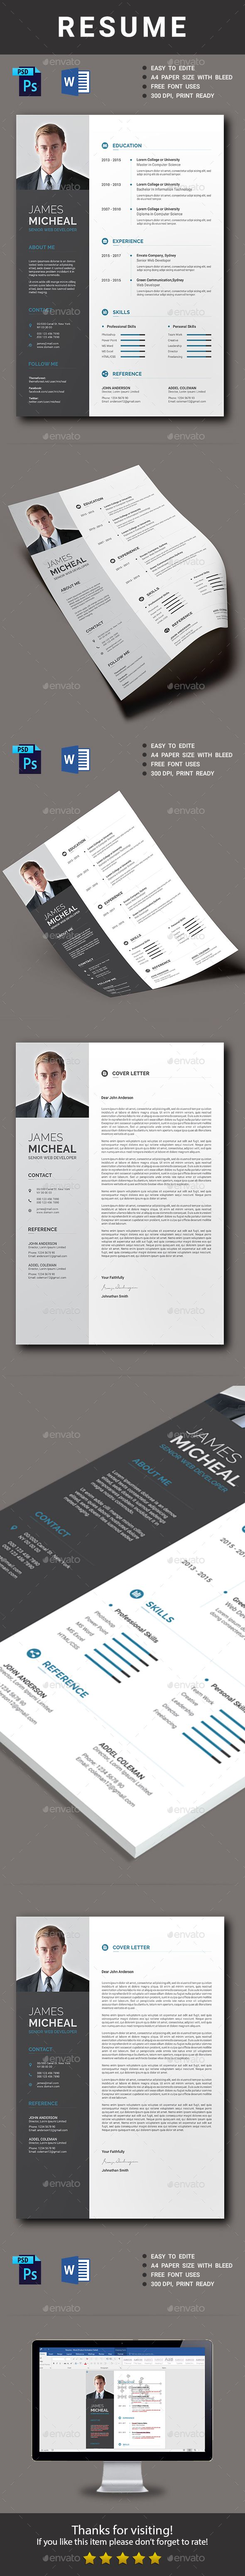 download job resume format%0A  Resume  Resumes Stationery Download here  https   graphicriver net